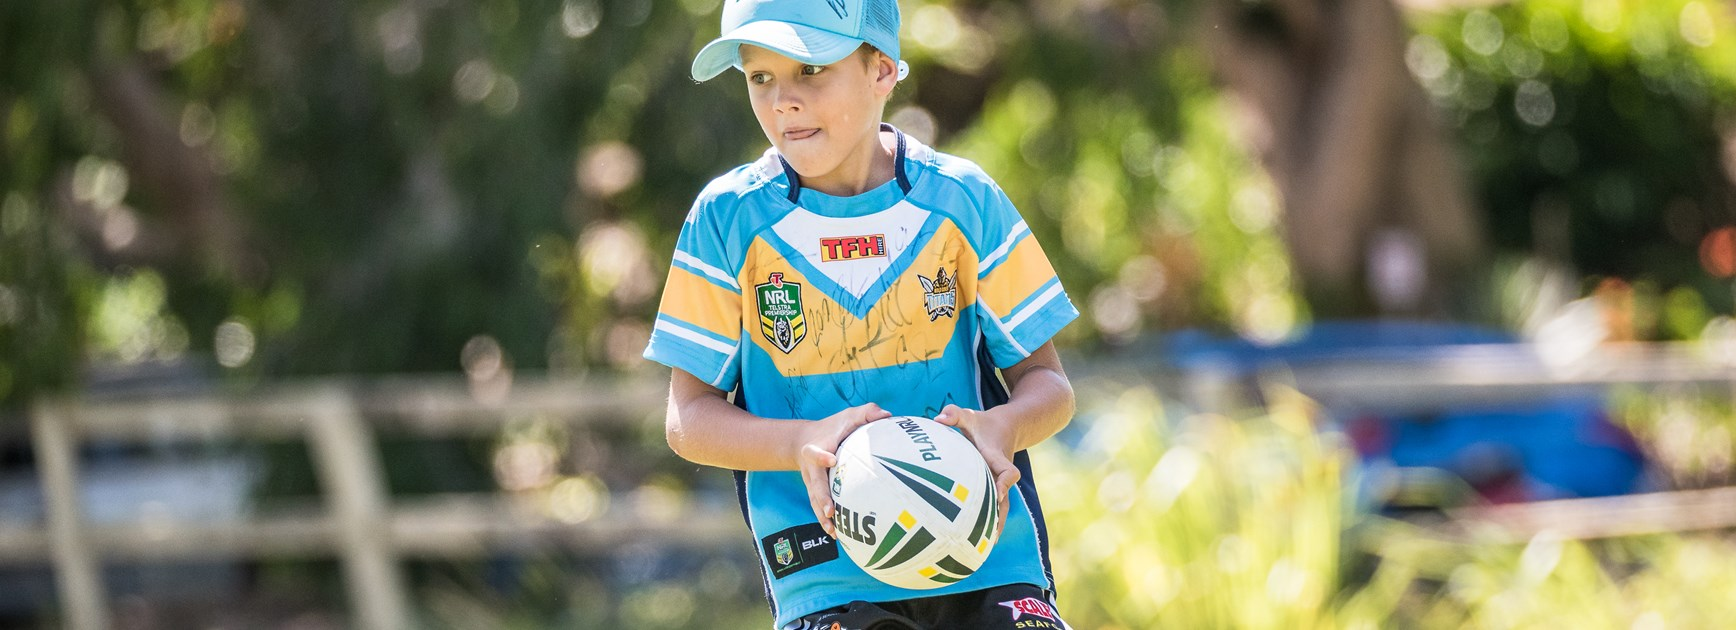 REGISTER NOW: School Holiday Clinic